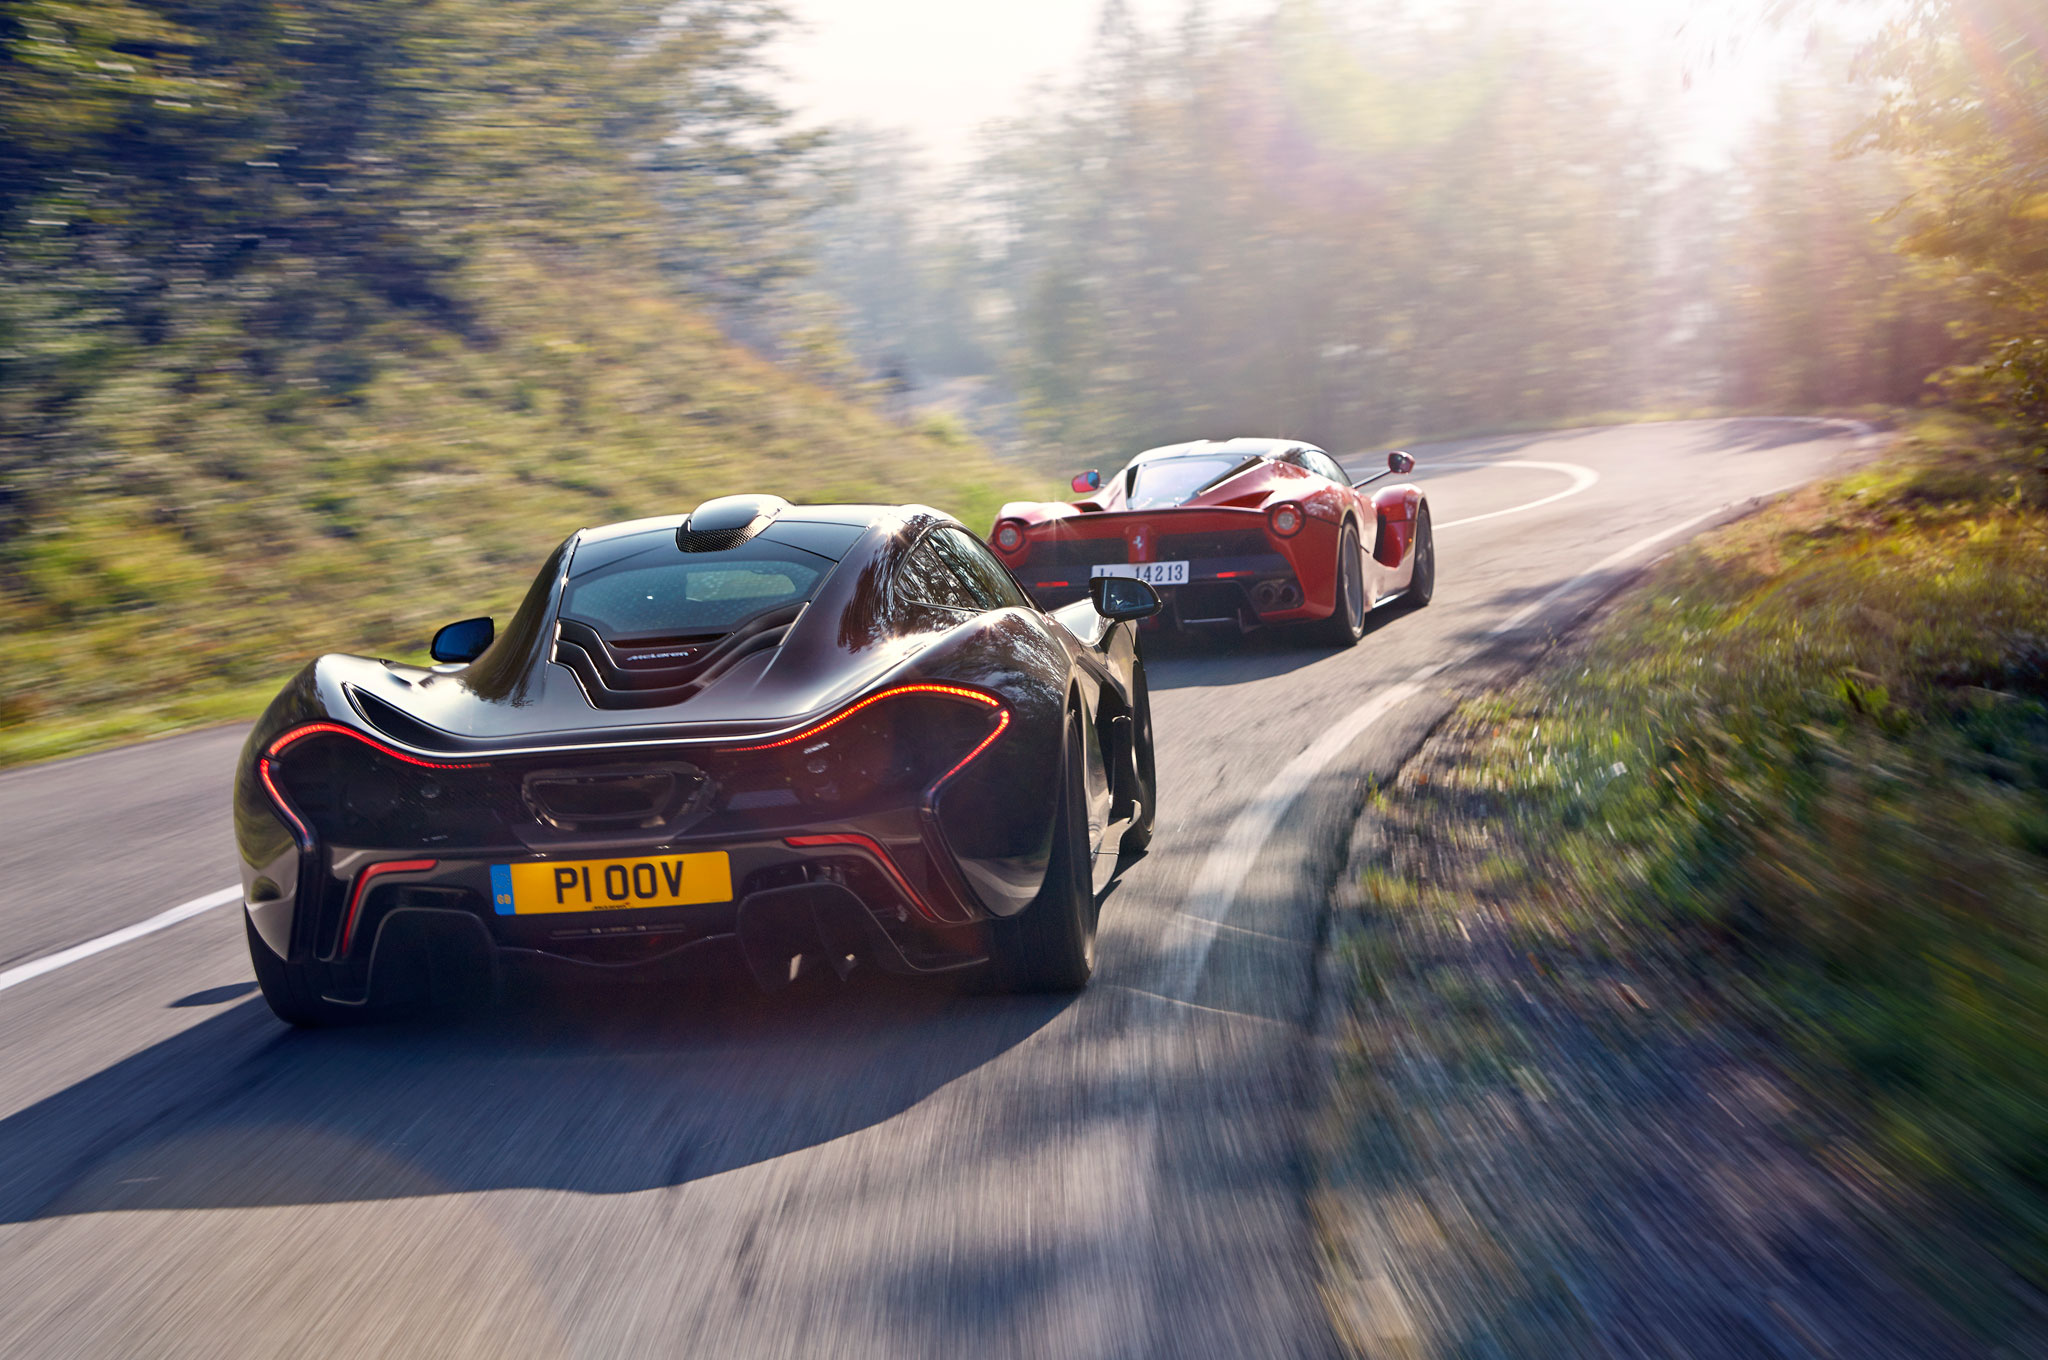 Hybrid is the New Fast: Ferrari LaFerrari vs. McLaren P1 on ferrari electric car, ferrari f100, ferrari f60, ferrari meme, ferrari aliante, ferrari ego, ferrari lamborghini mix, ferrari f750, ferrari bike, ferrari laptop, ferrari f1, ferrari f1000, ferrari of the future, ferrari concept, ferrari formula 1, ferrari cop car, ferrari logo, ferrari ff, ferrari suv,